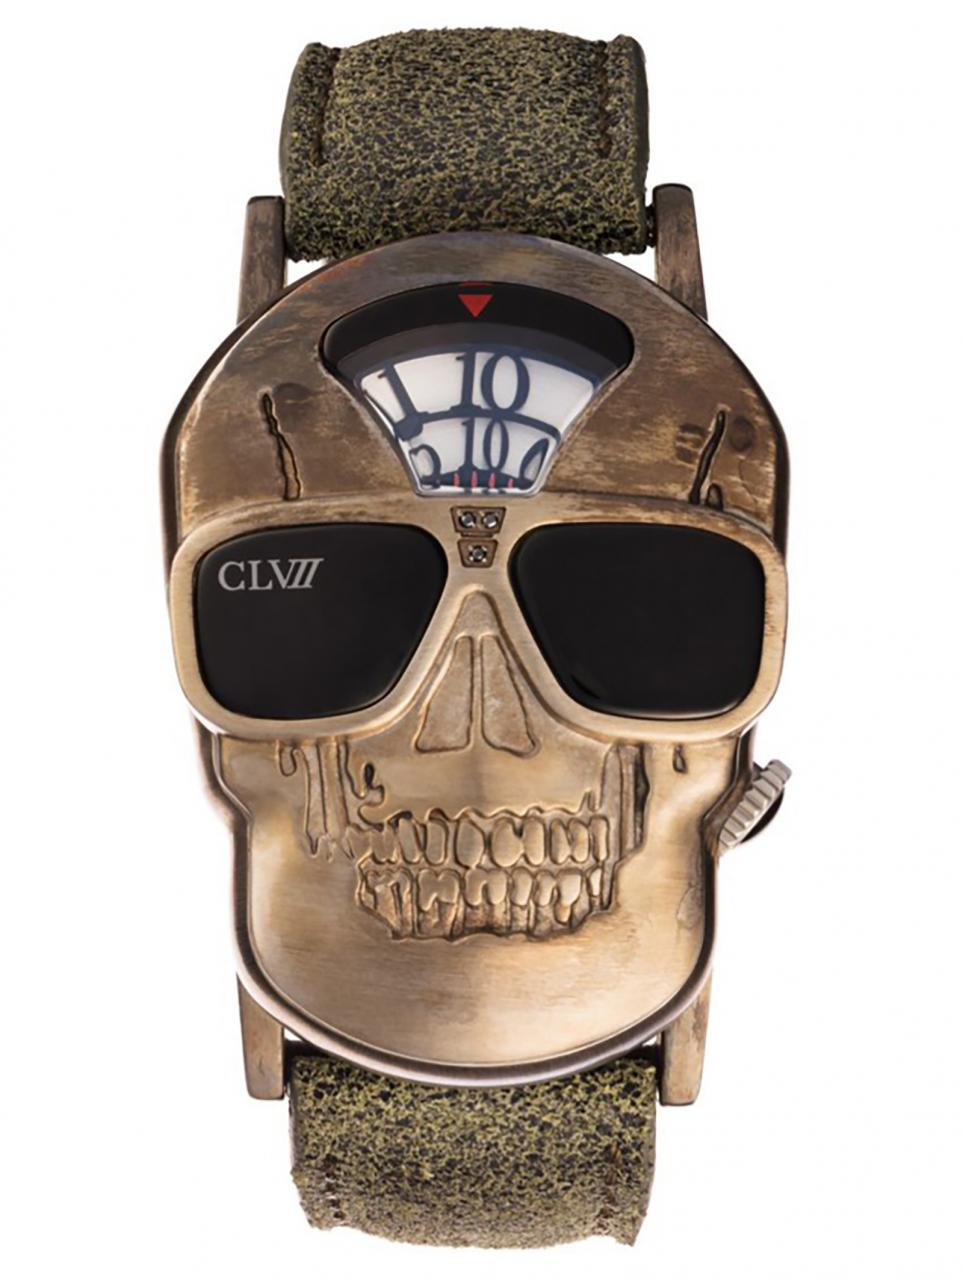 CLVII Skull watch